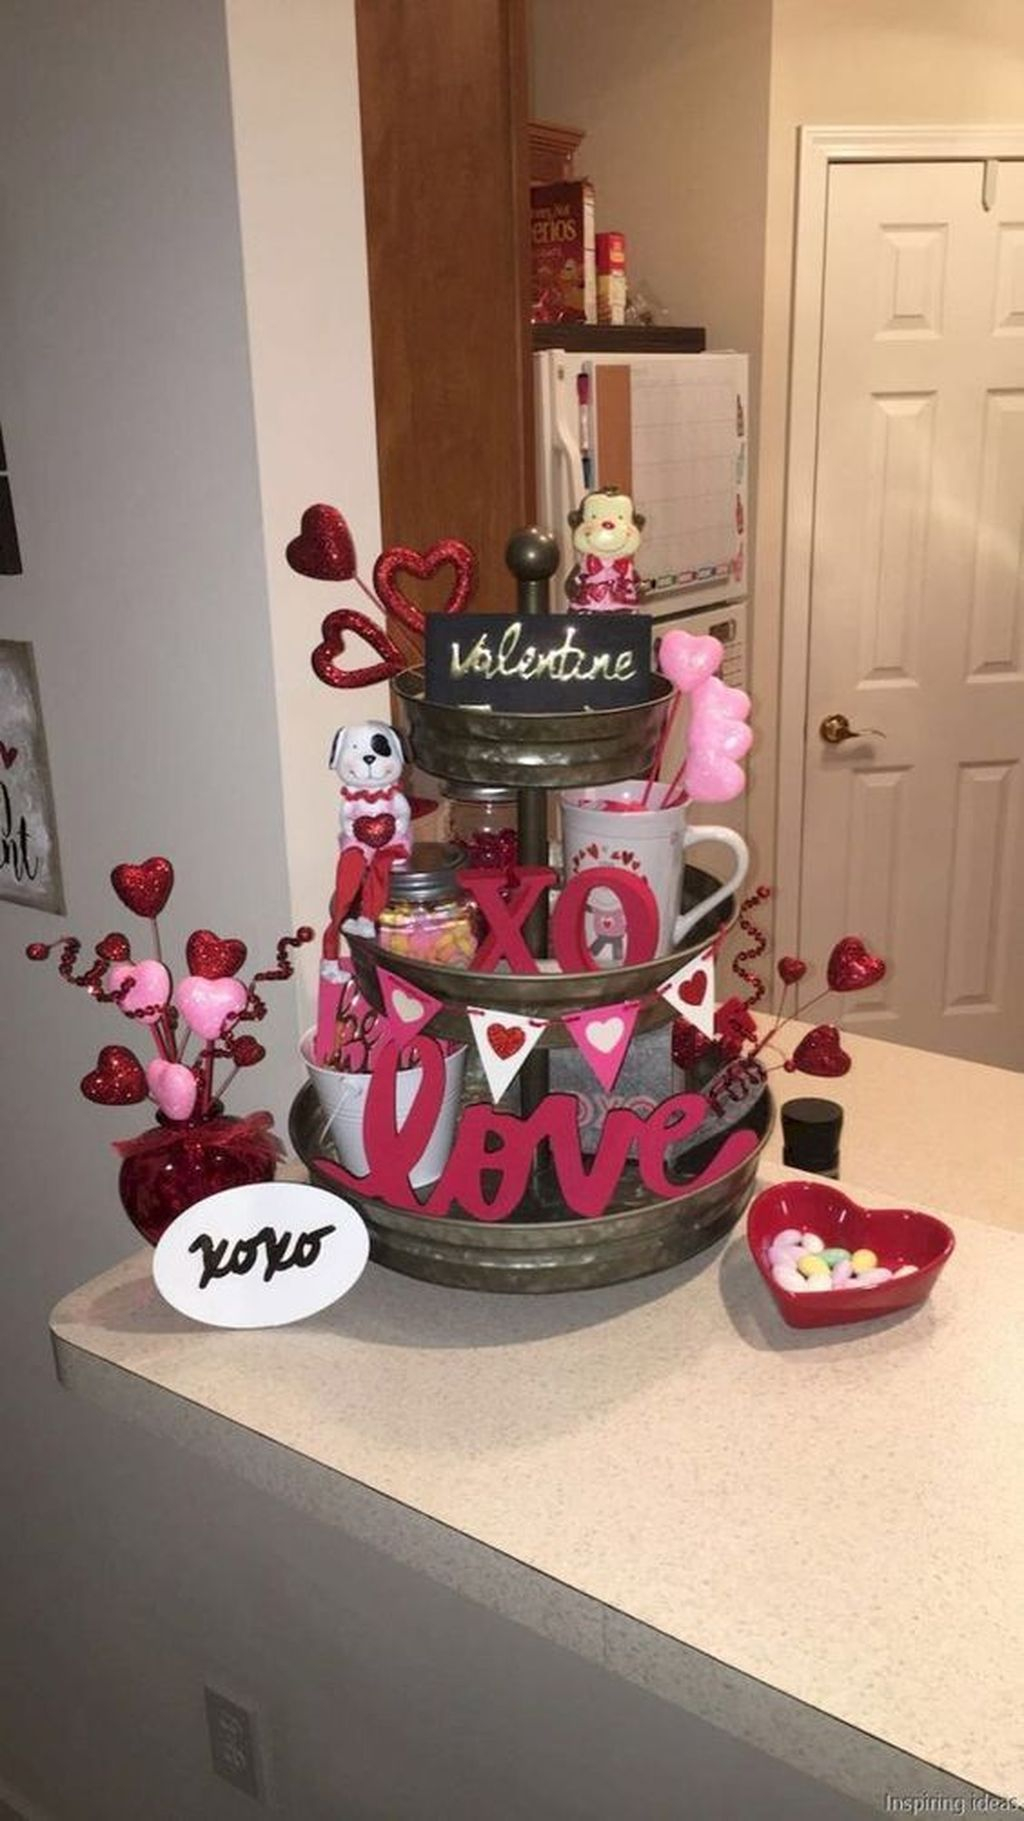 Exciting Diy Valentines Day Decorations35